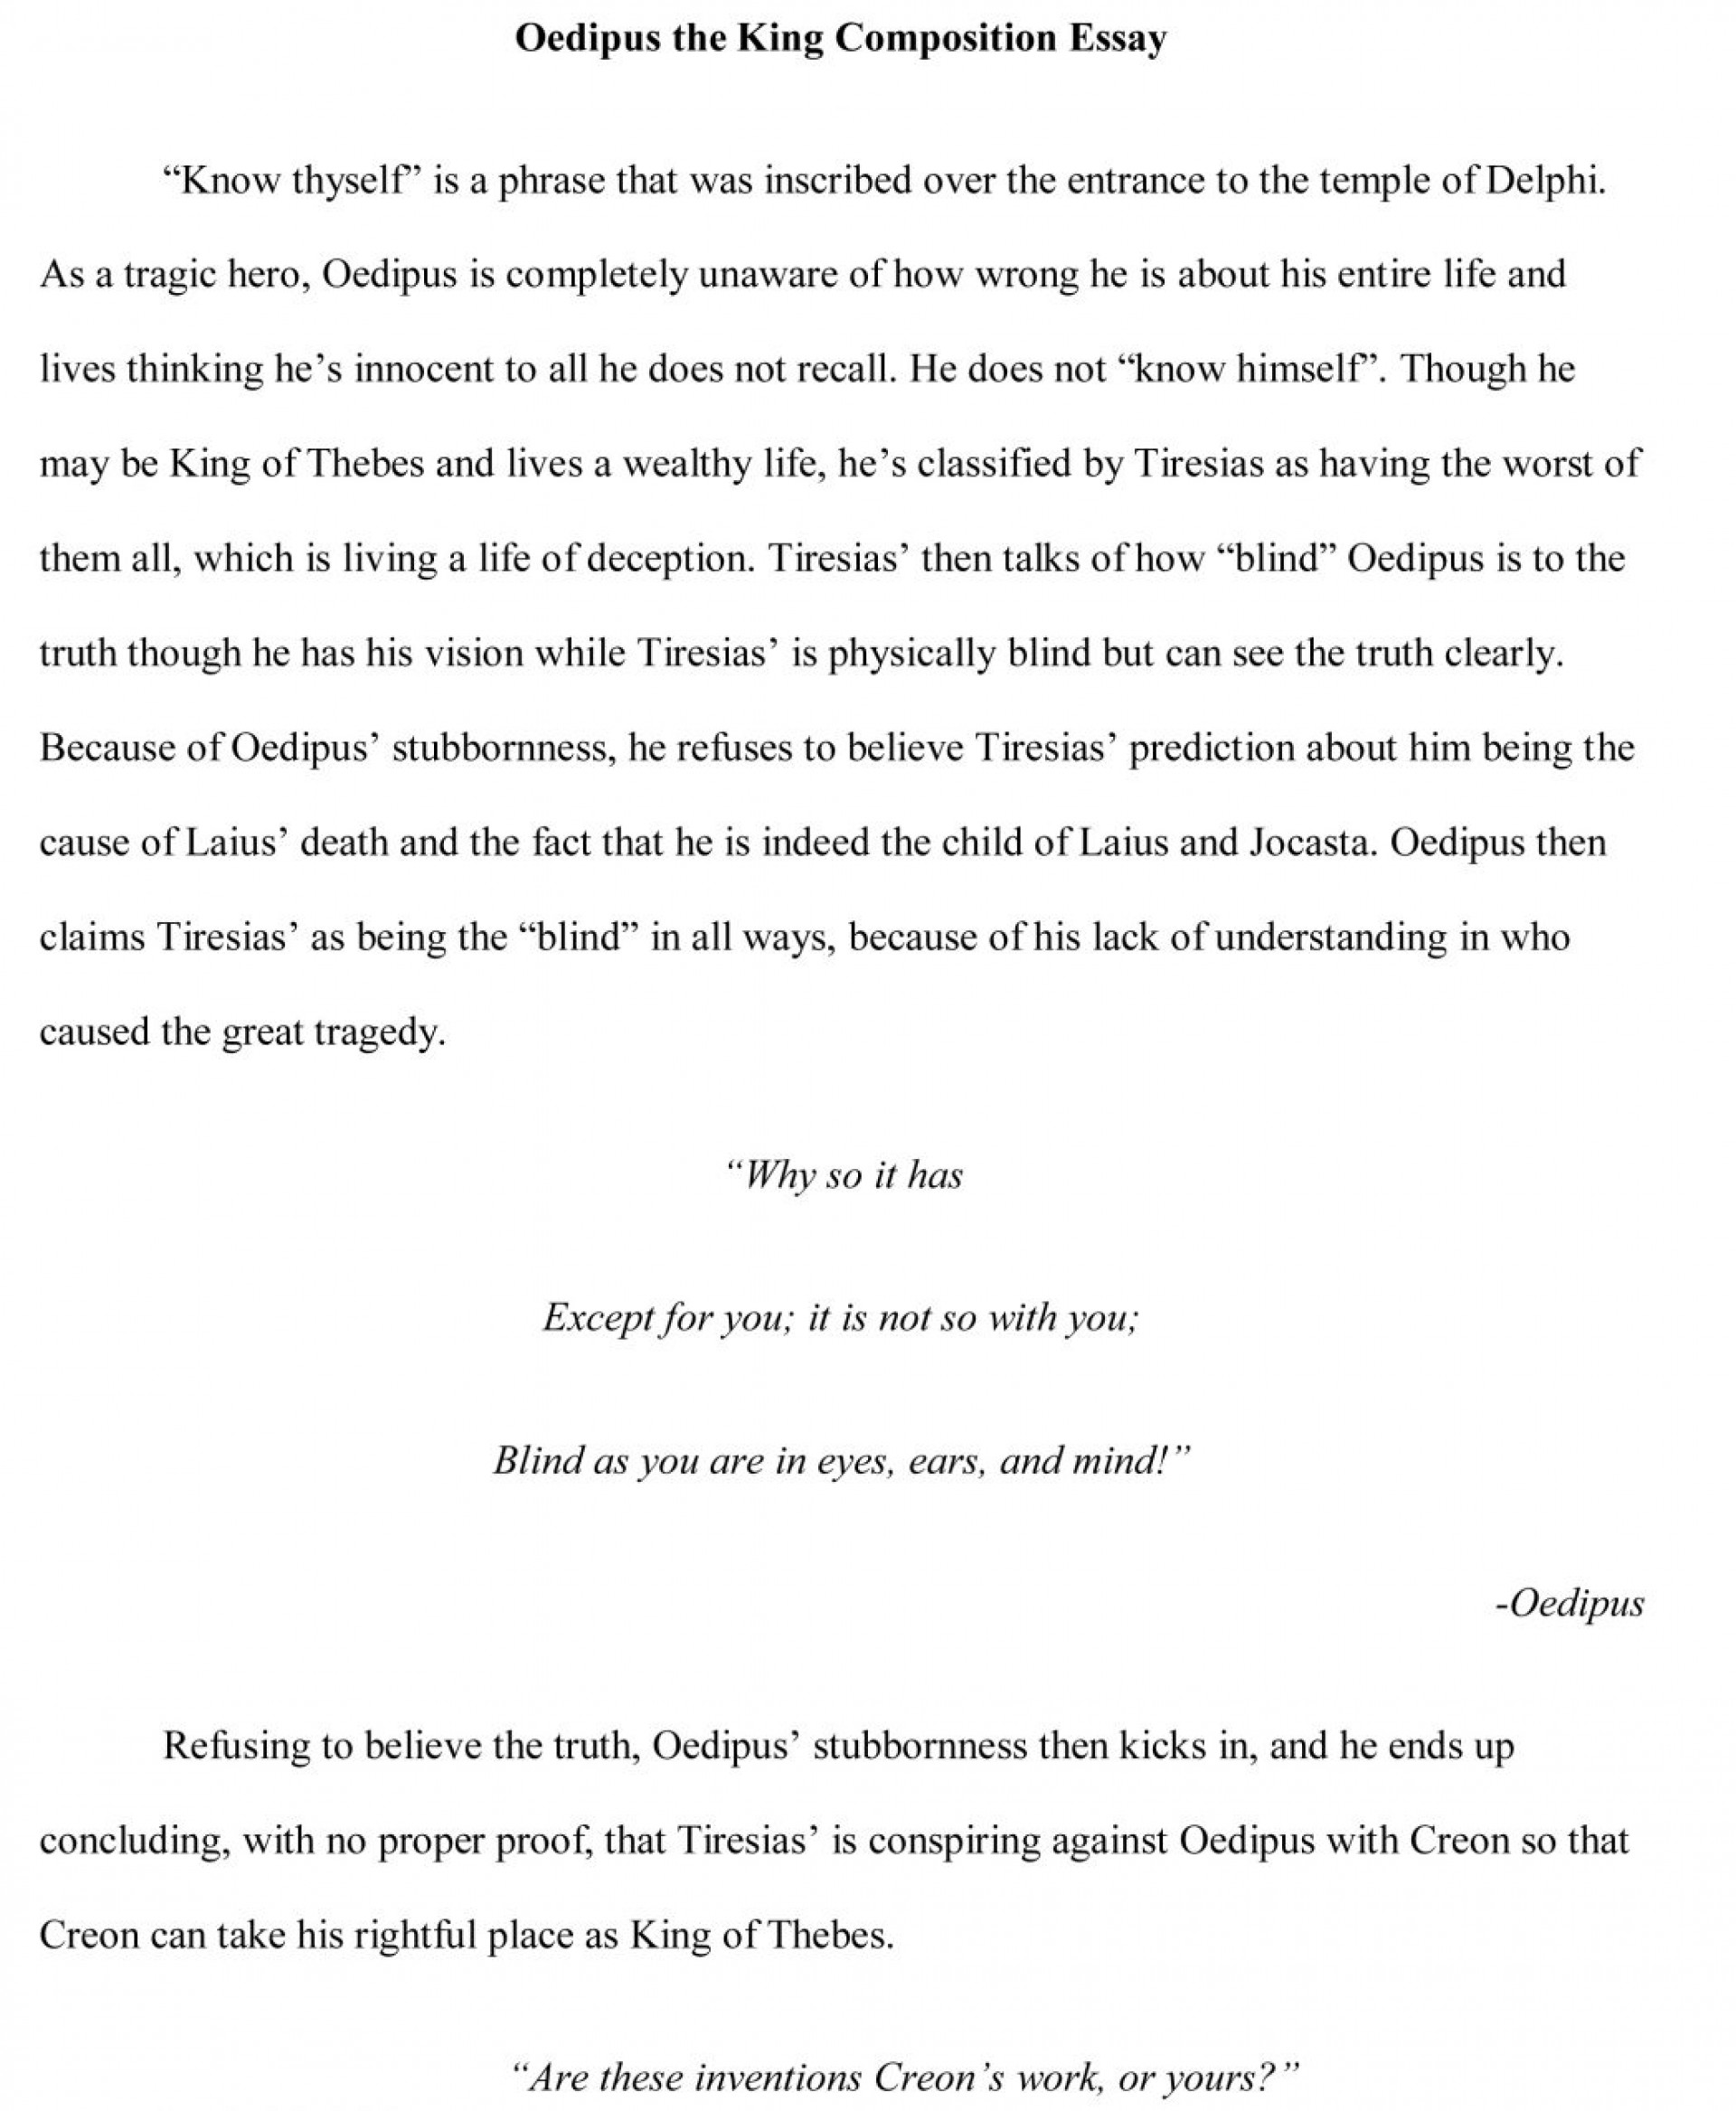 008 Renaissance Essay Example Questions Paper Topics Funny Research Oedipus Free S Argumentative For Middle School College Students Hilarious Good Surprising History Art Thesis 1920